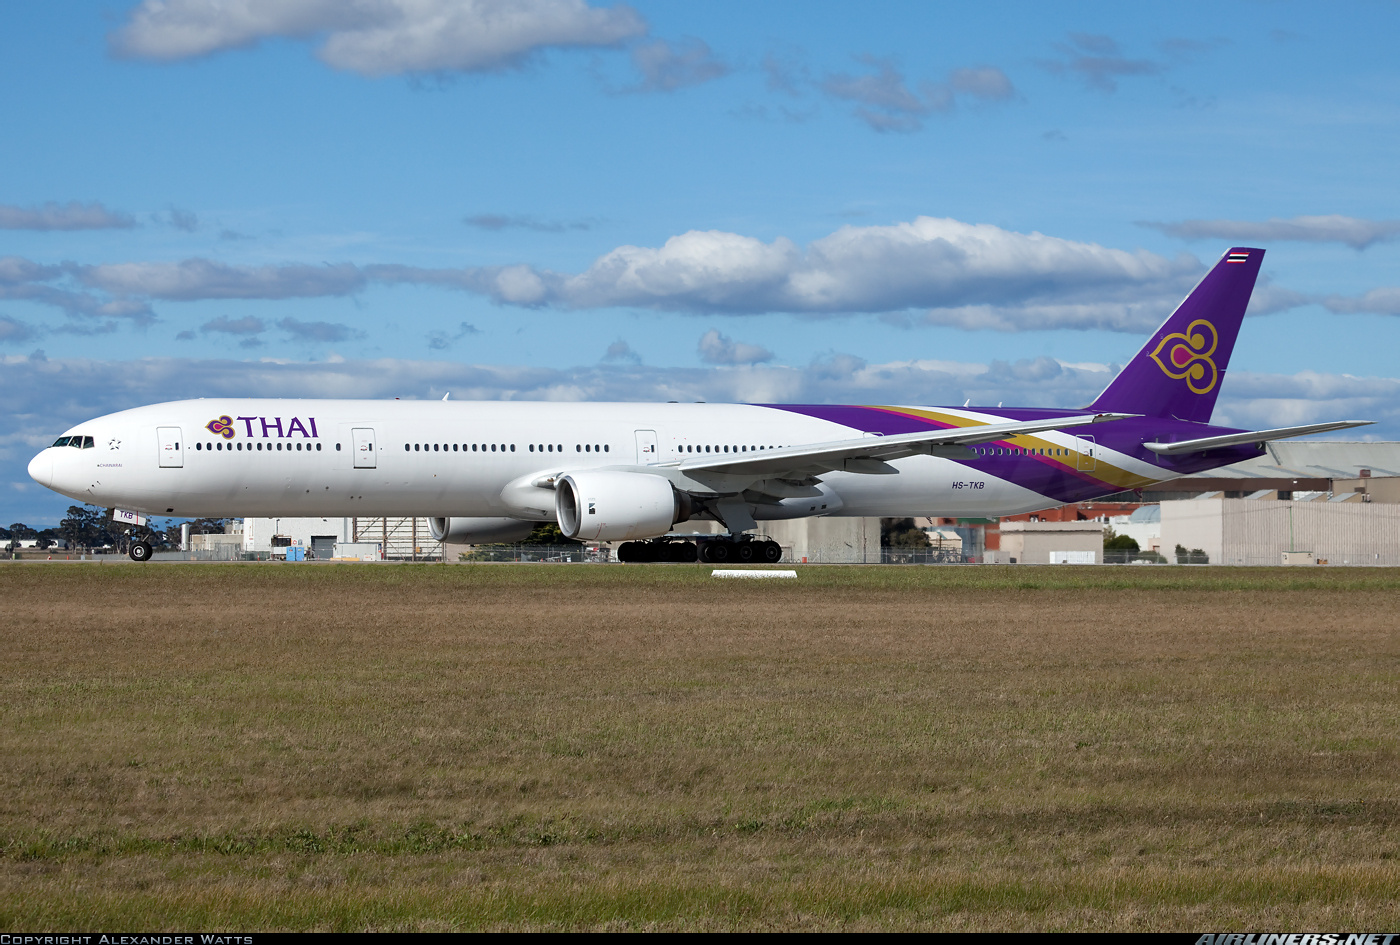 Download this Thai Airways Economy Class Melbourne Bangkok Boeing picture